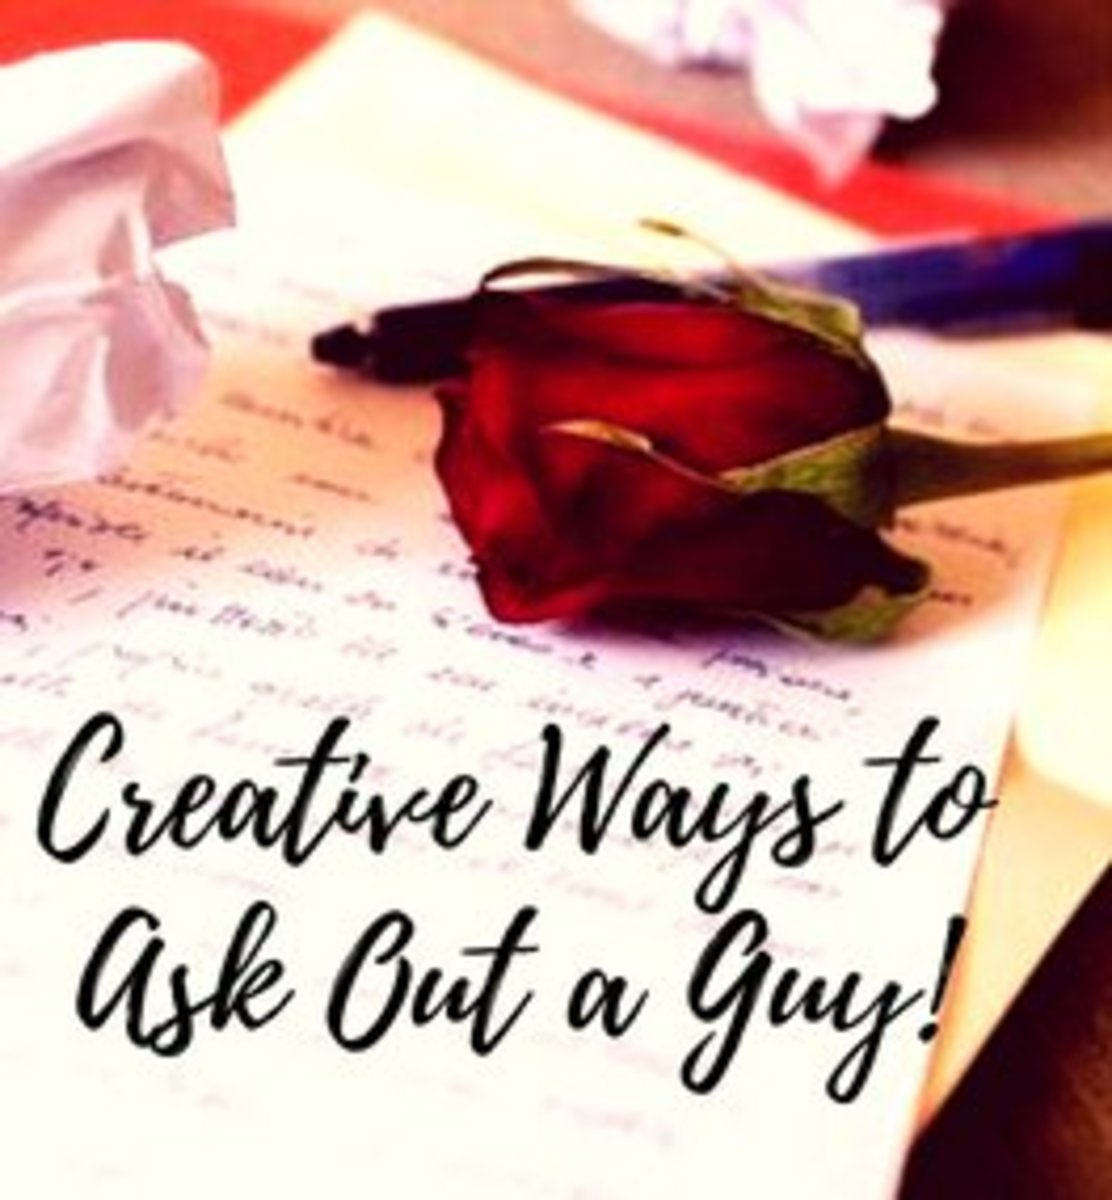 14 Cute and Creative Ways to Ask Out a Guy Without Sounding Desperate